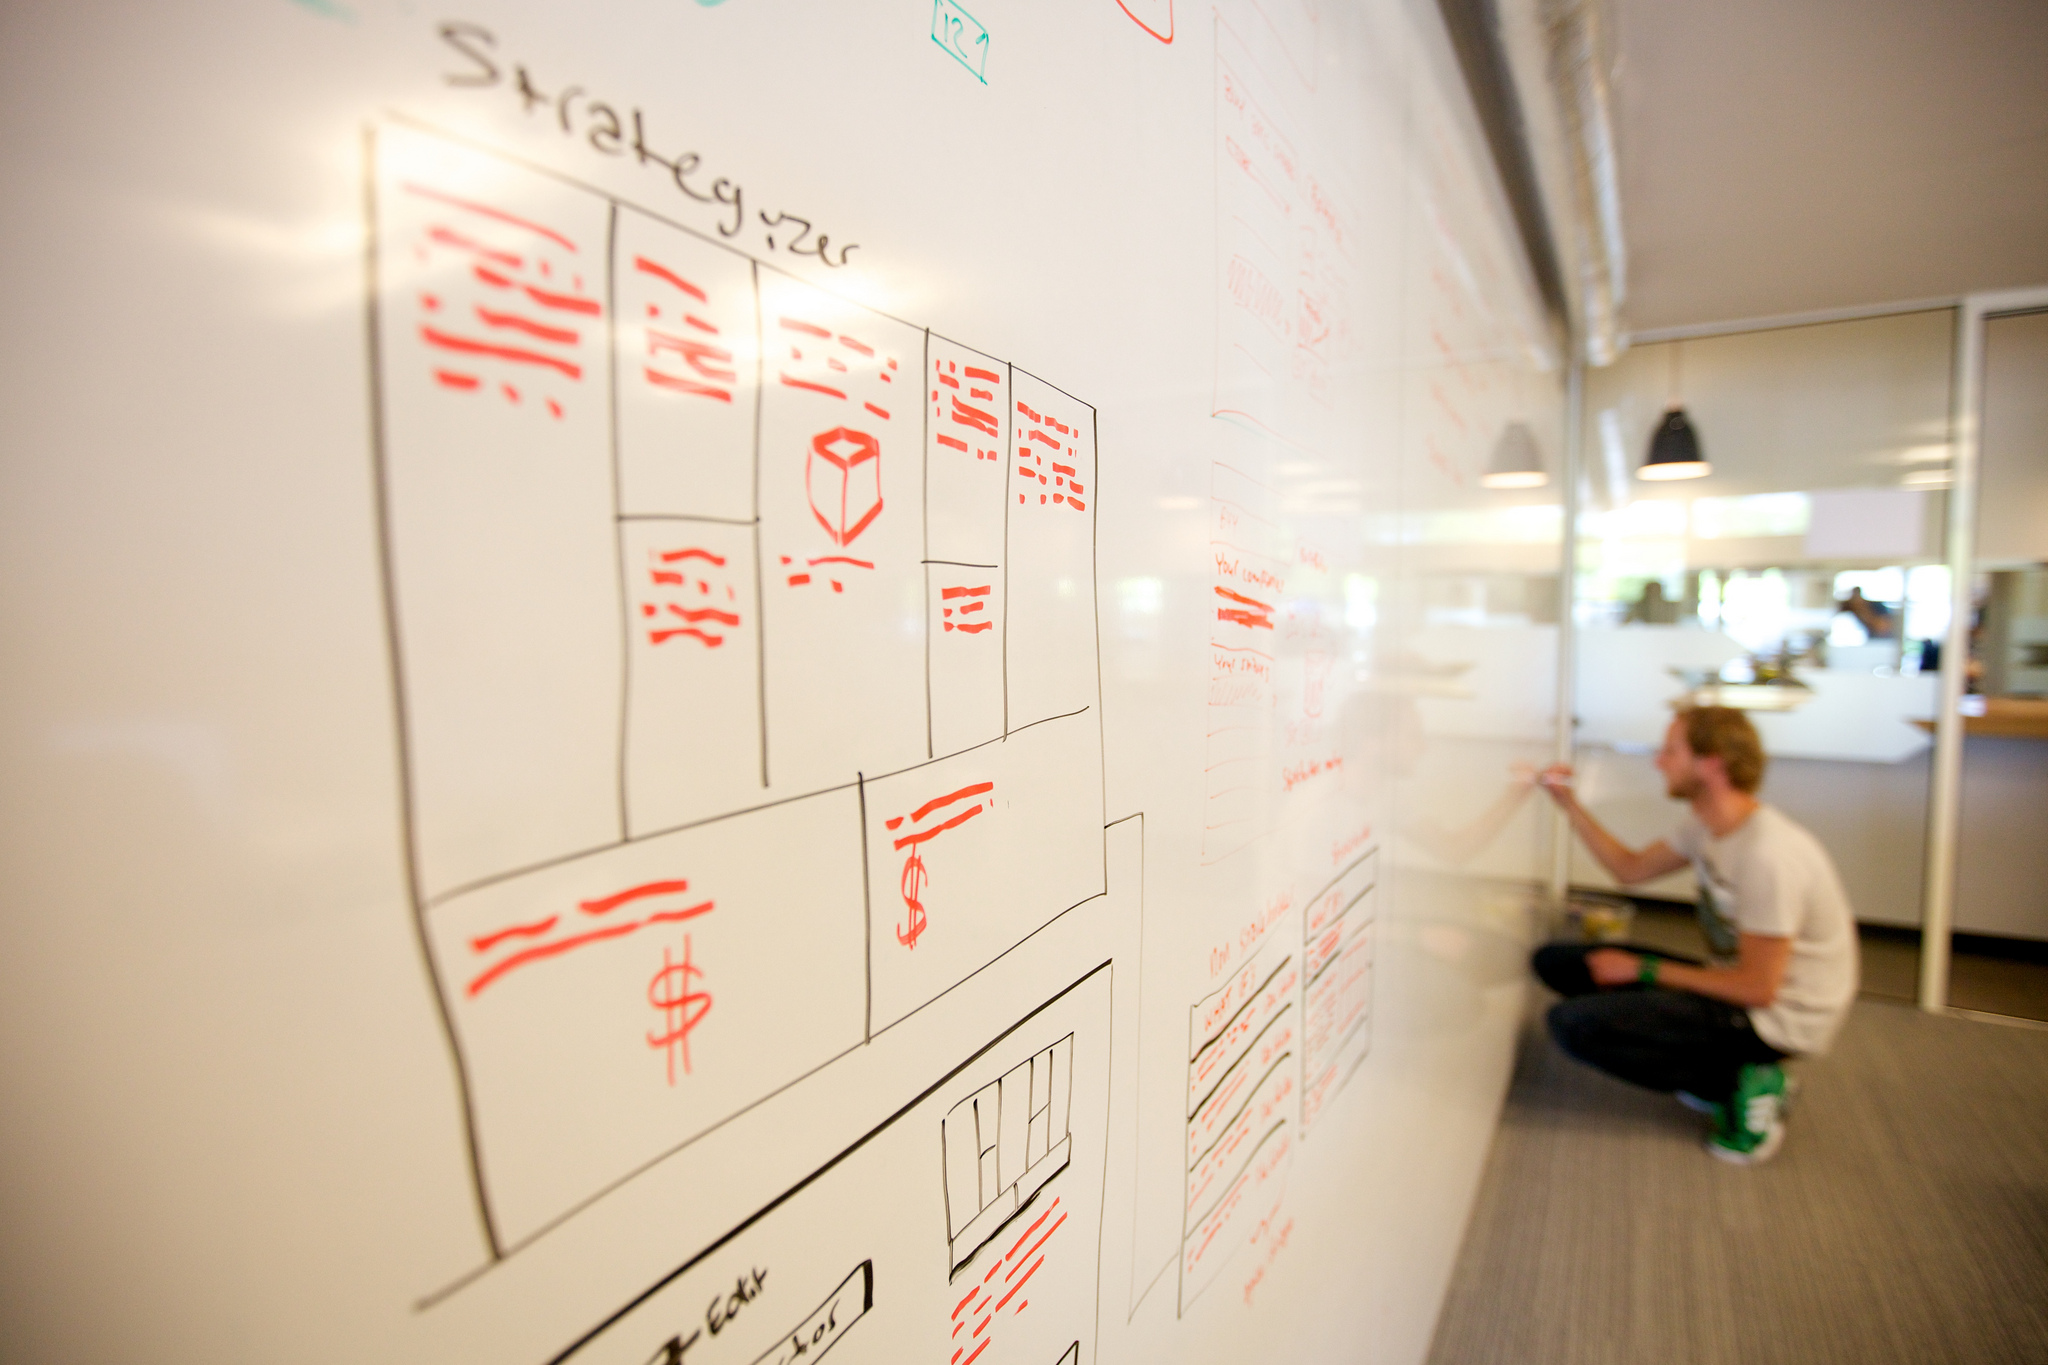 Lean Canvas - Strategyzer